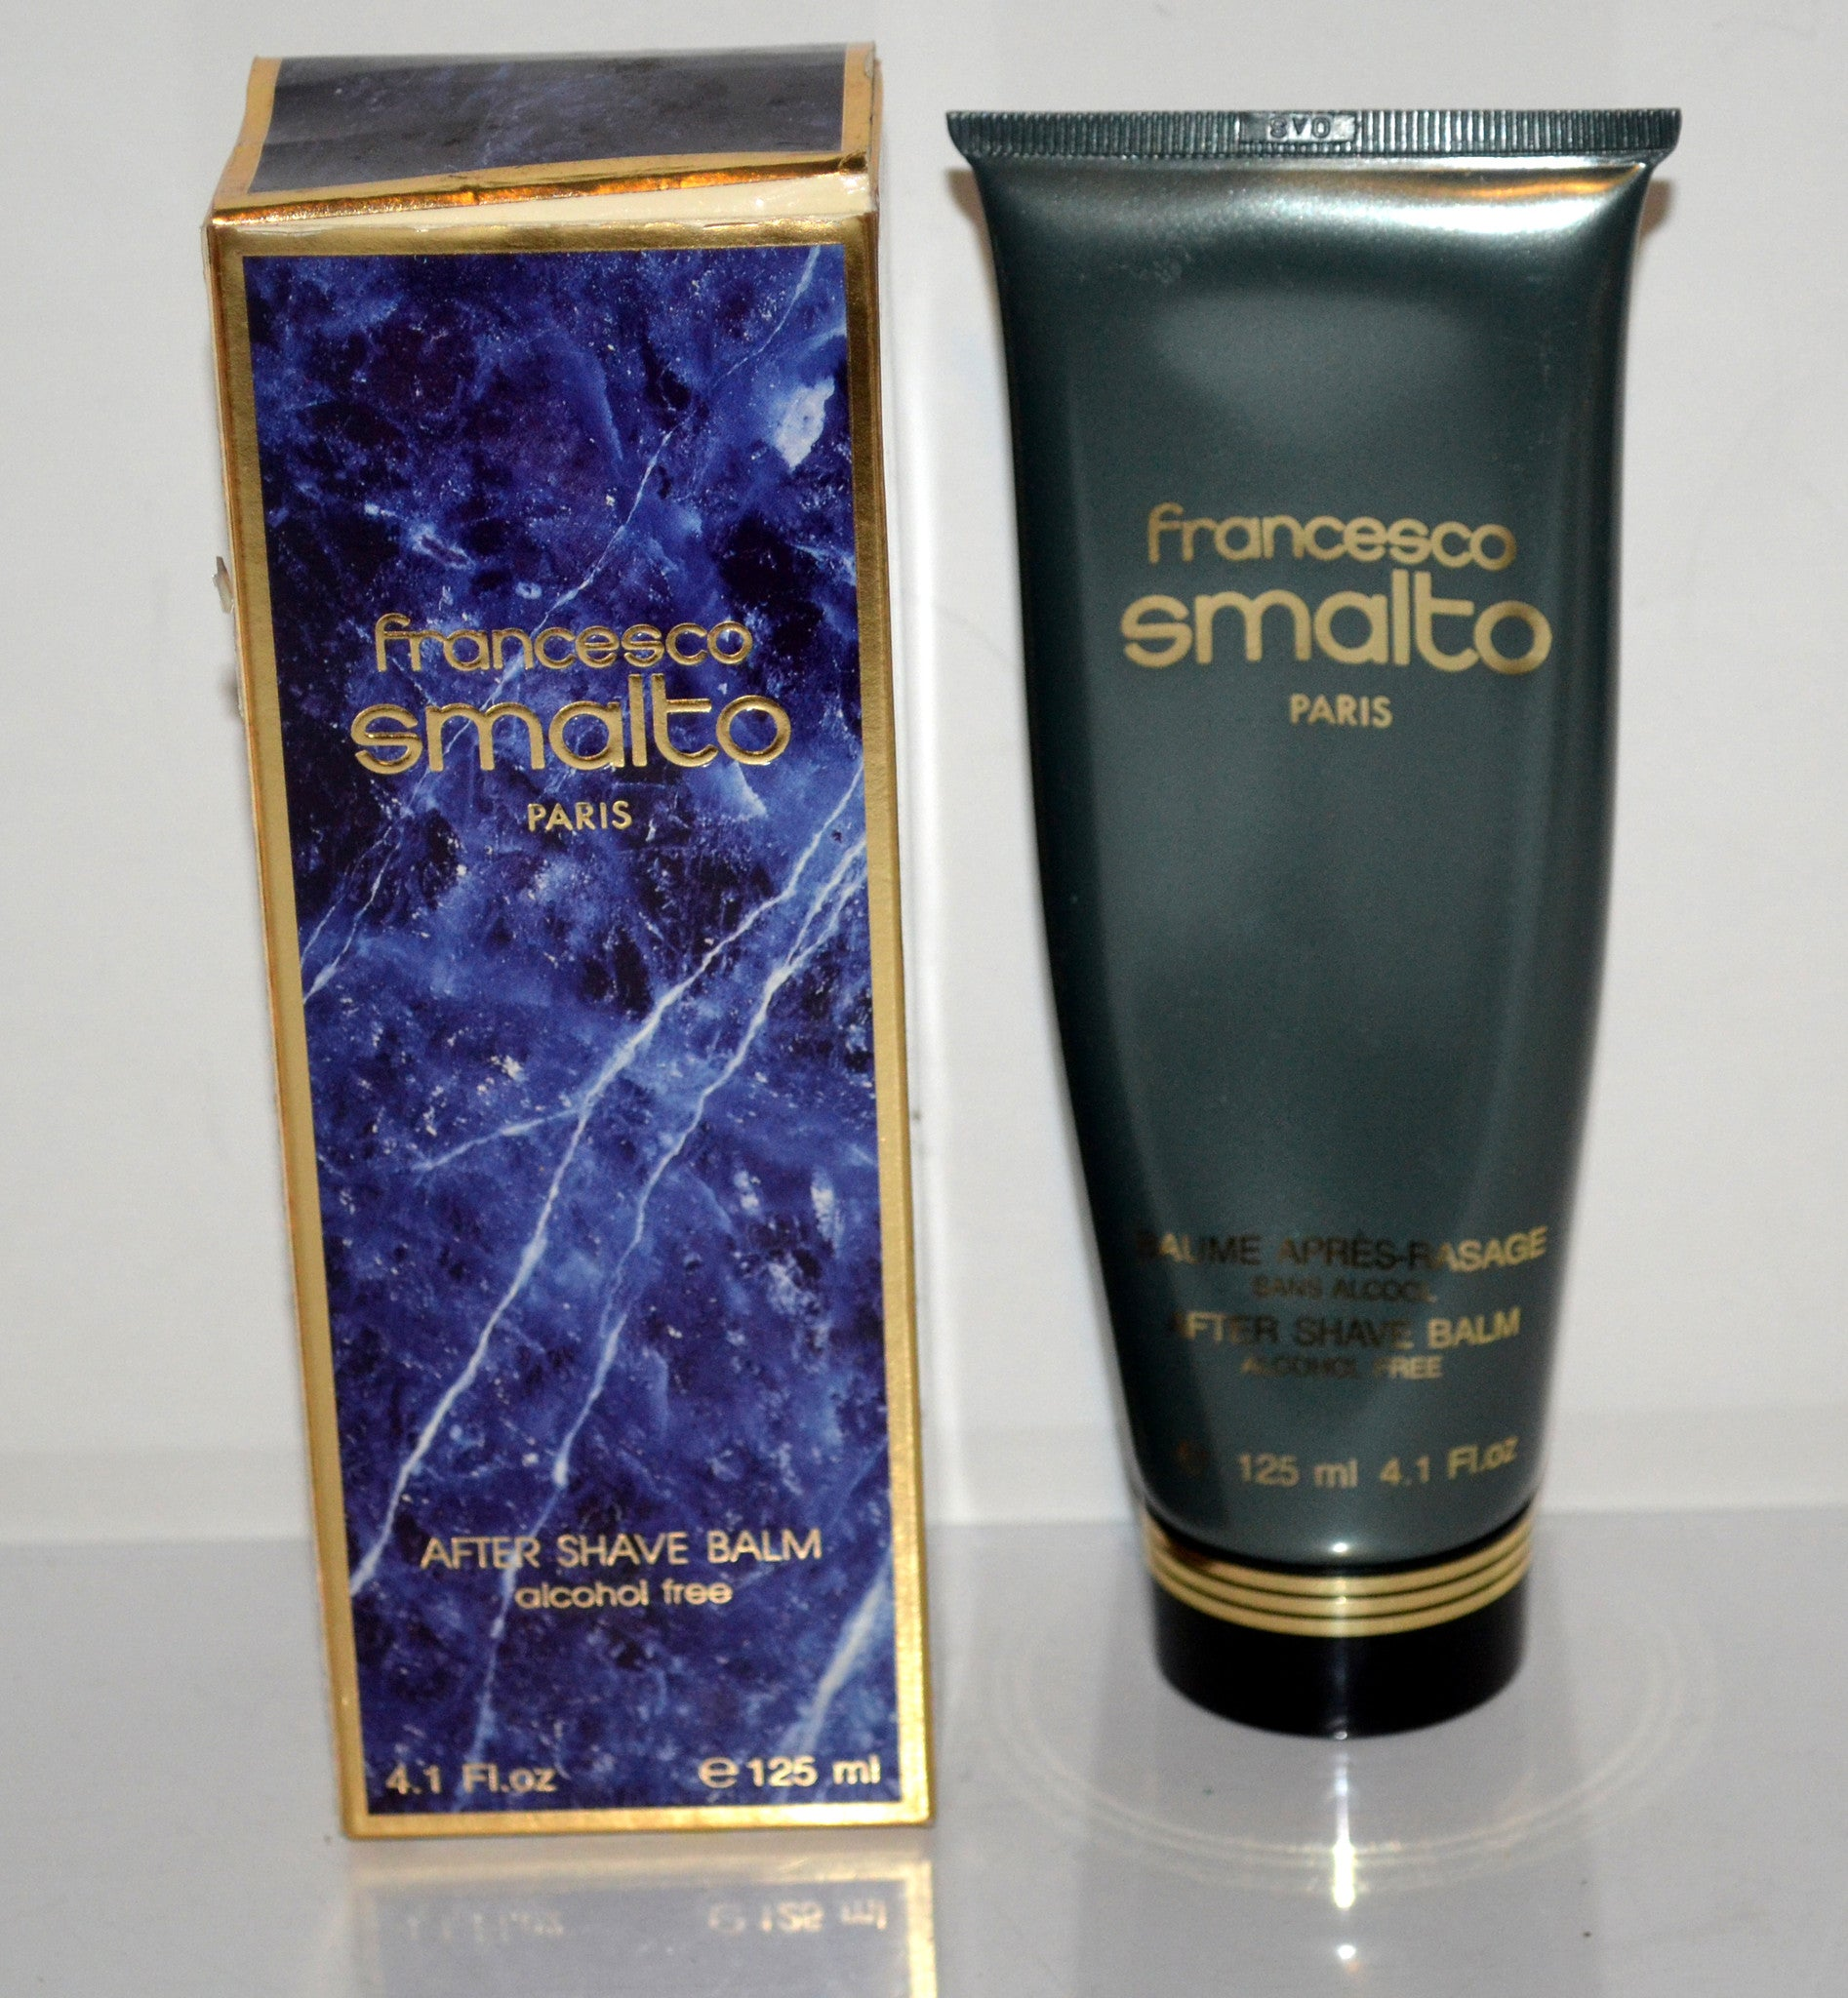 Francesco Smalto After Shave Balm